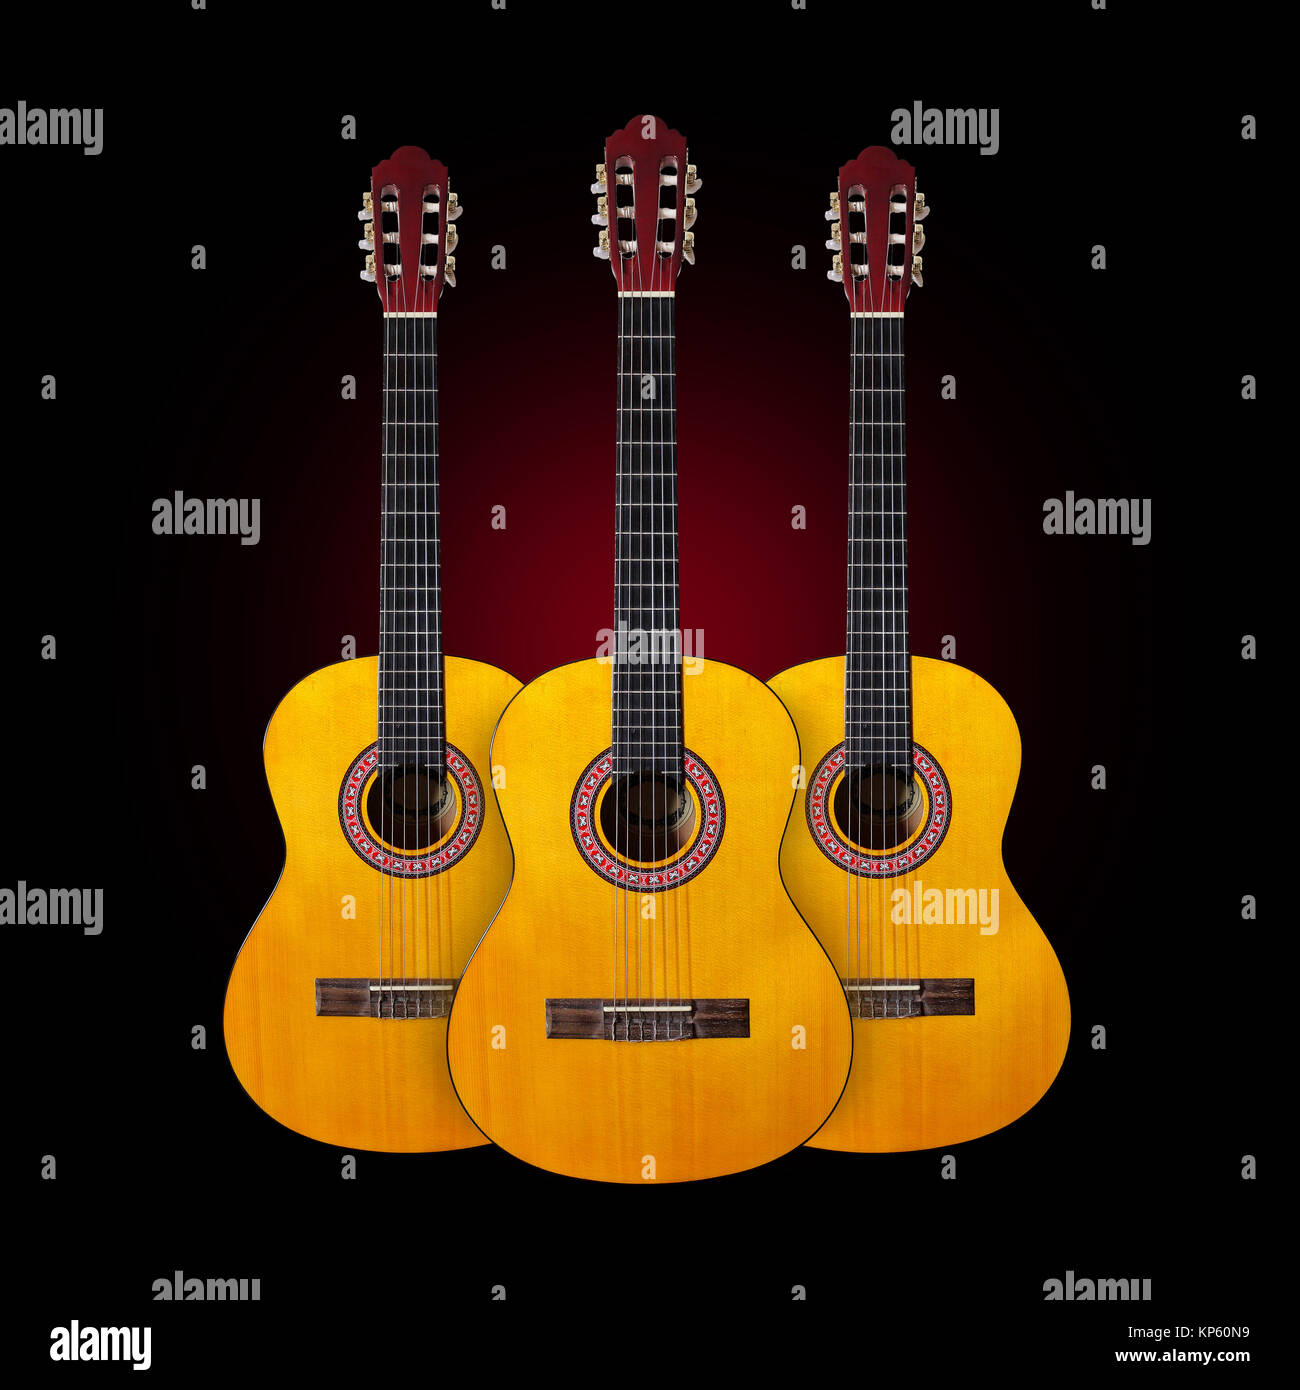 Musical instrument - Three Classic guitar on a dark background. - Stock Image